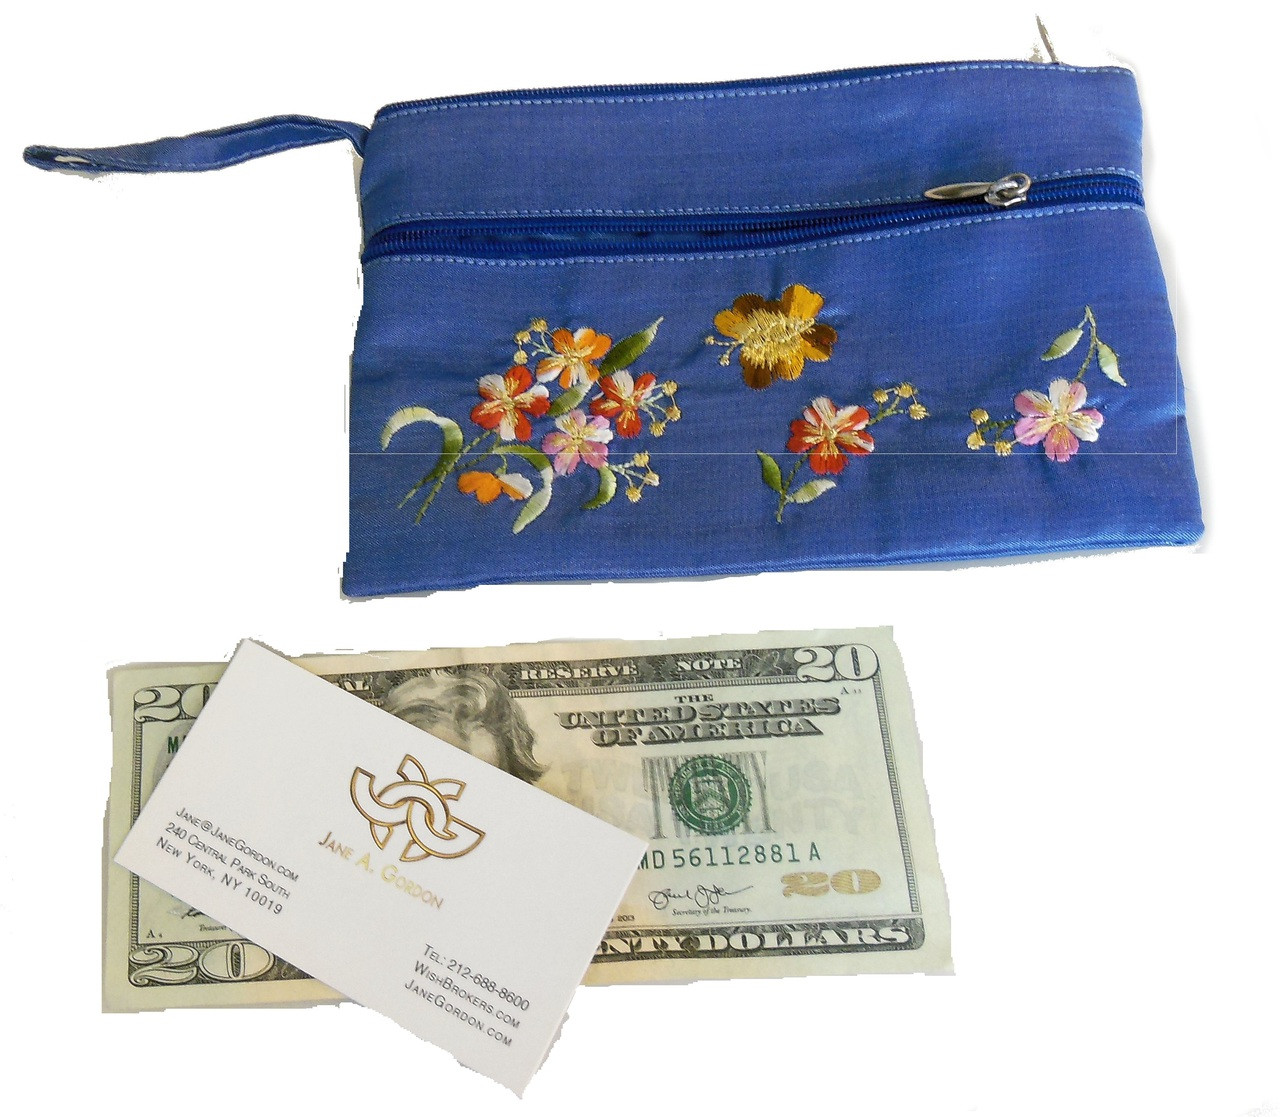 Embroidered purse/ wallet from Vietnam. Blue